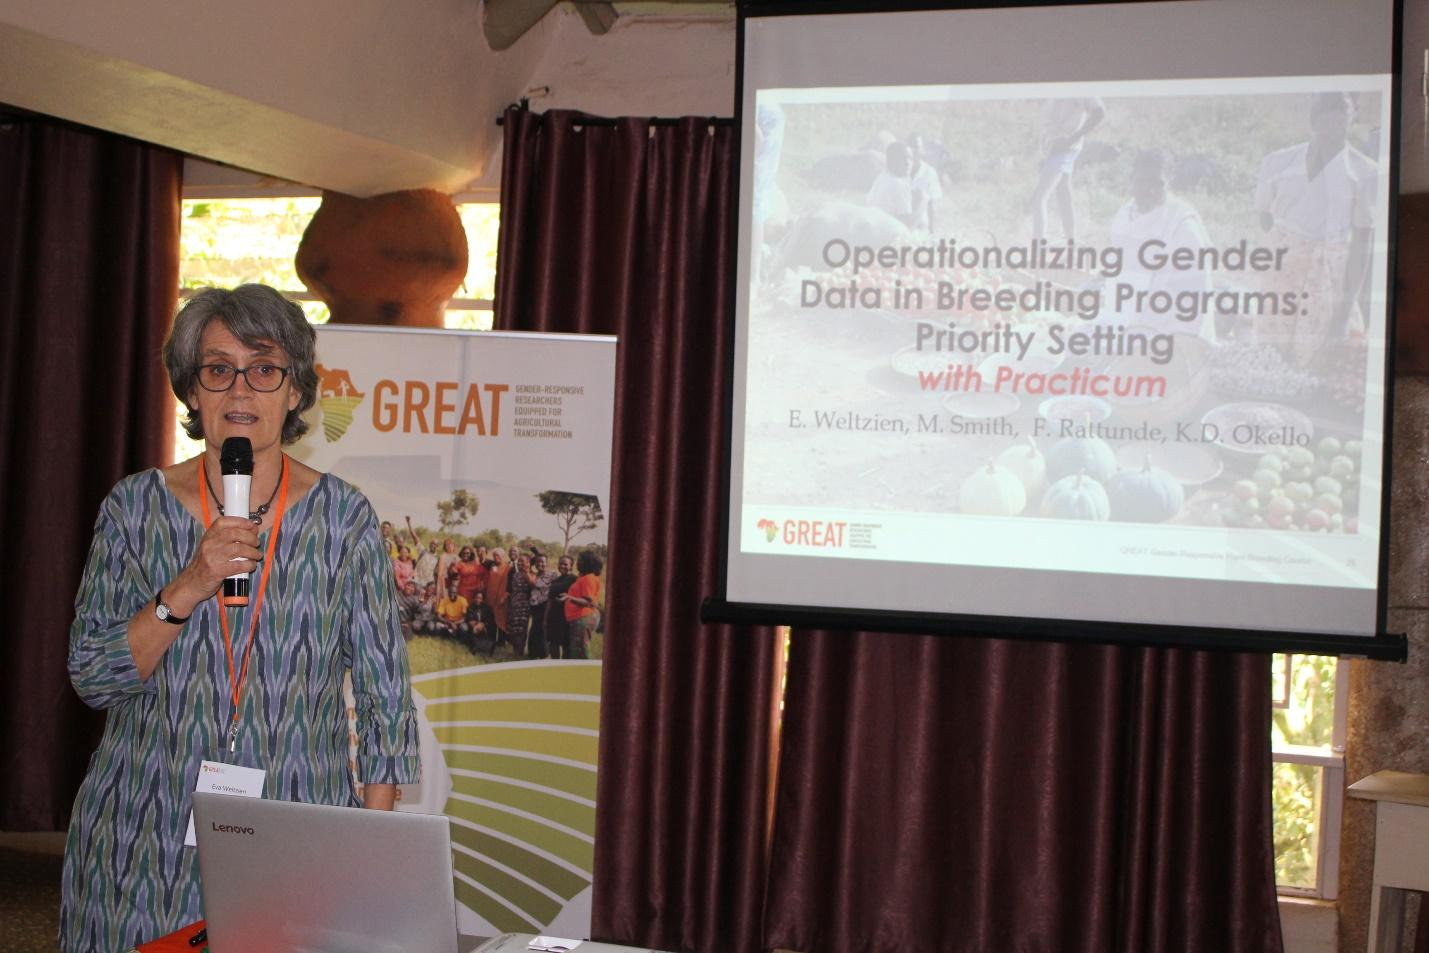 Above: Crop breeder Dr. Eve Weltzien facilitated the session on operationalizing data in breeding programs.